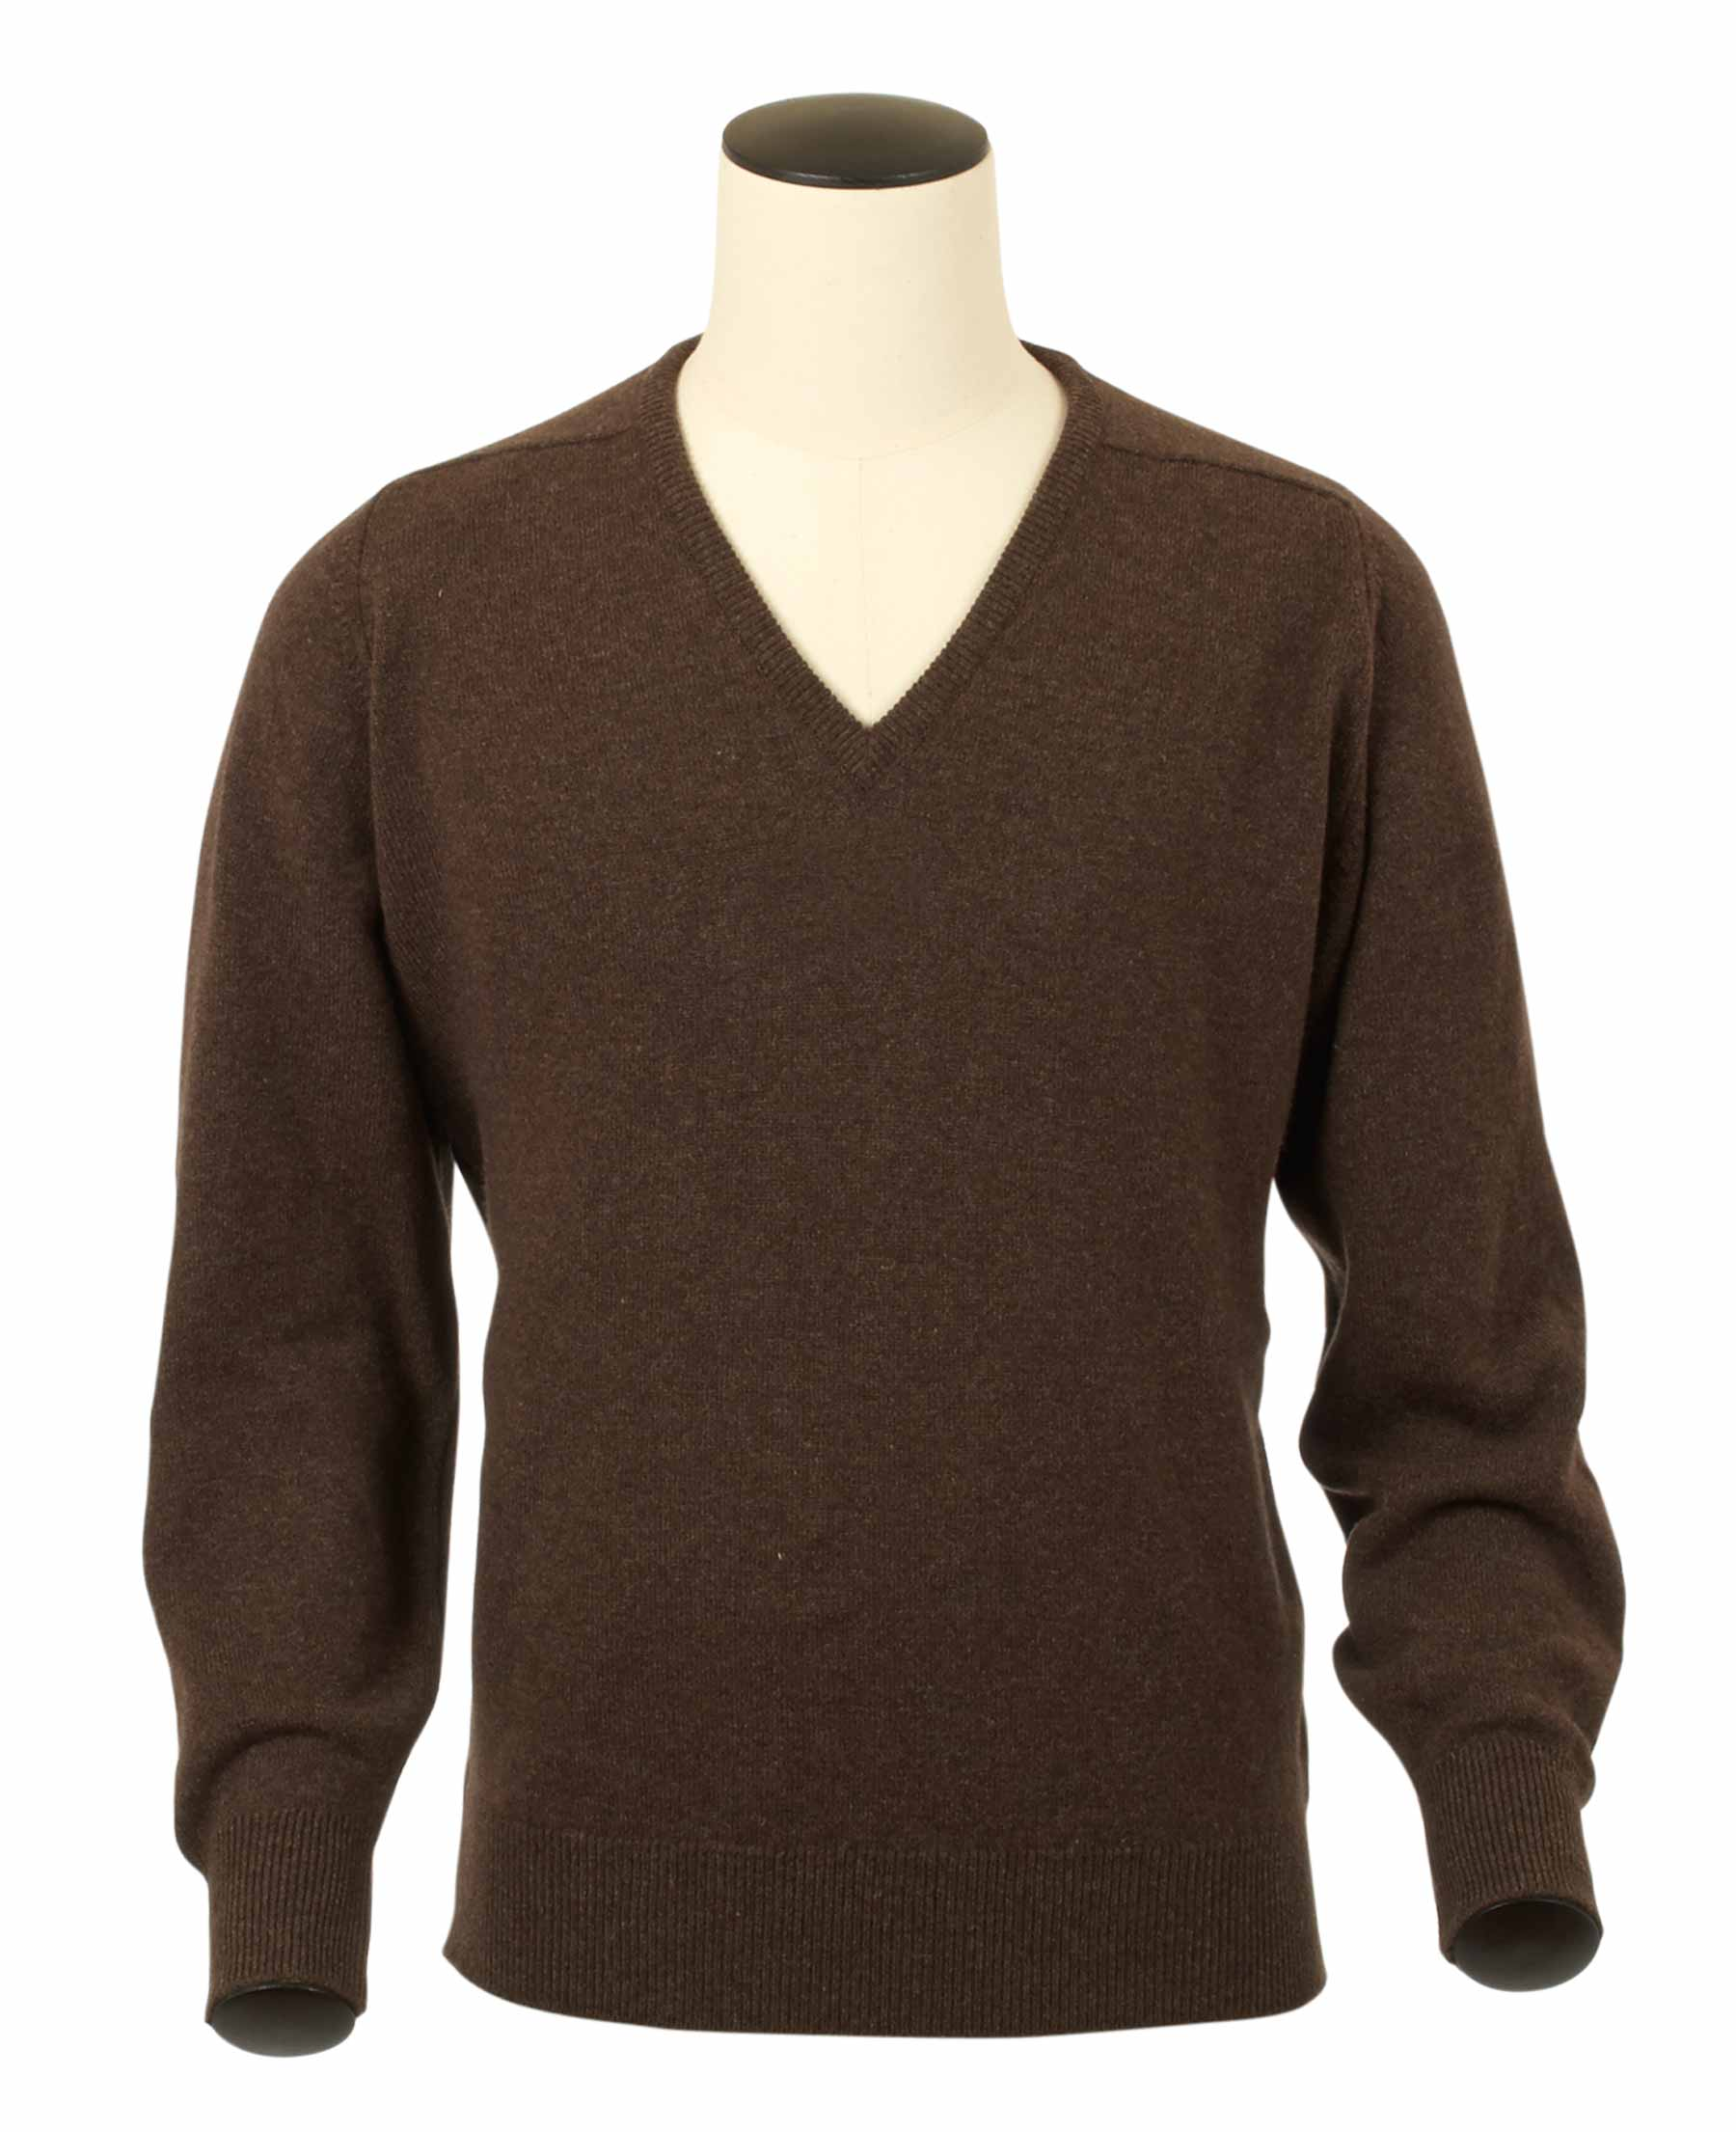 Scott, Couleur Mocha, Pull col V en 100% lambswool - Vêtements laine geelong